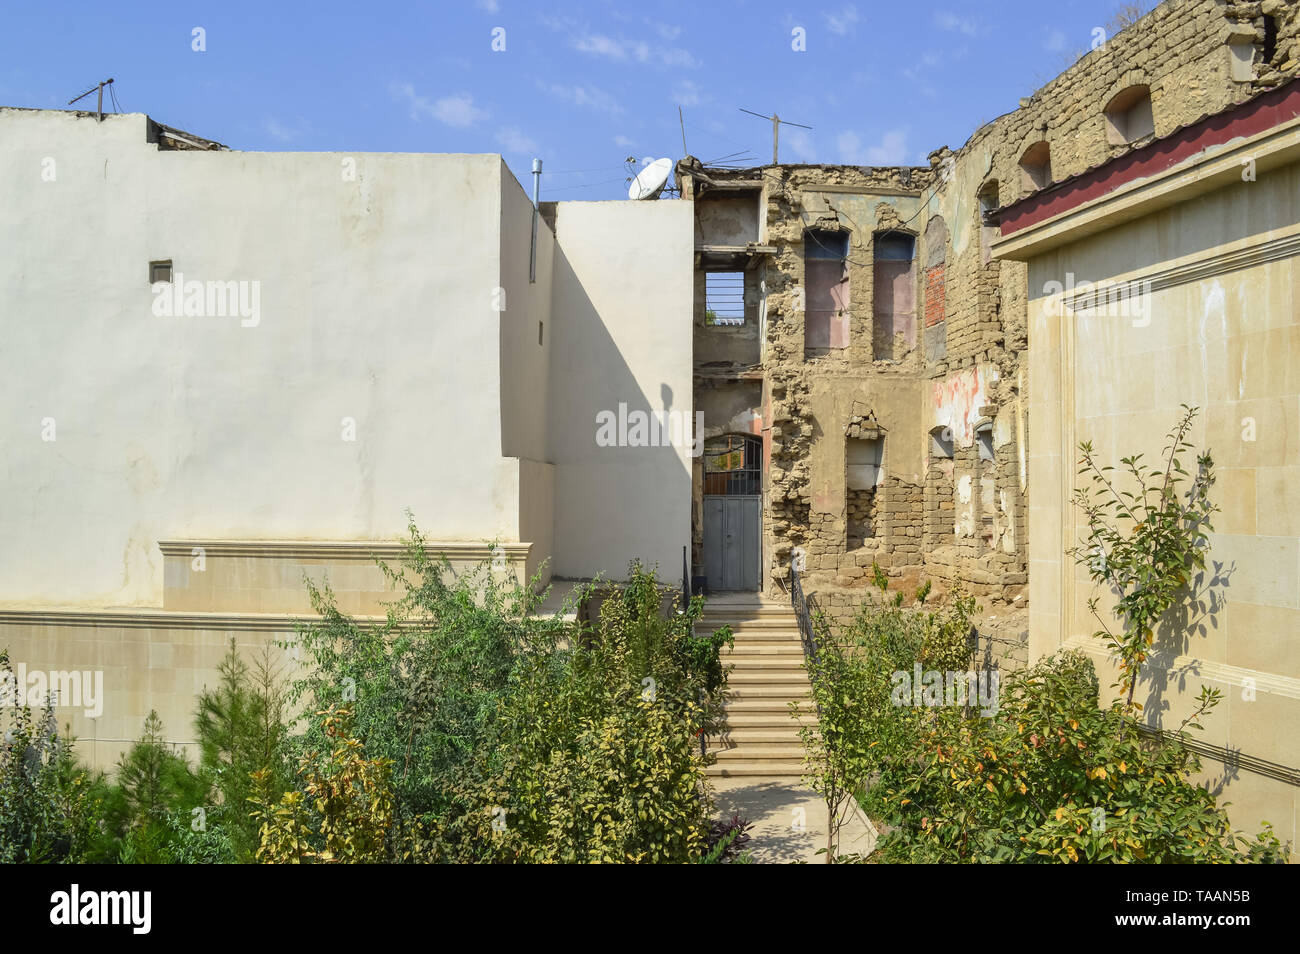 ruins of house in old city Baku on sunny day - Stock Image